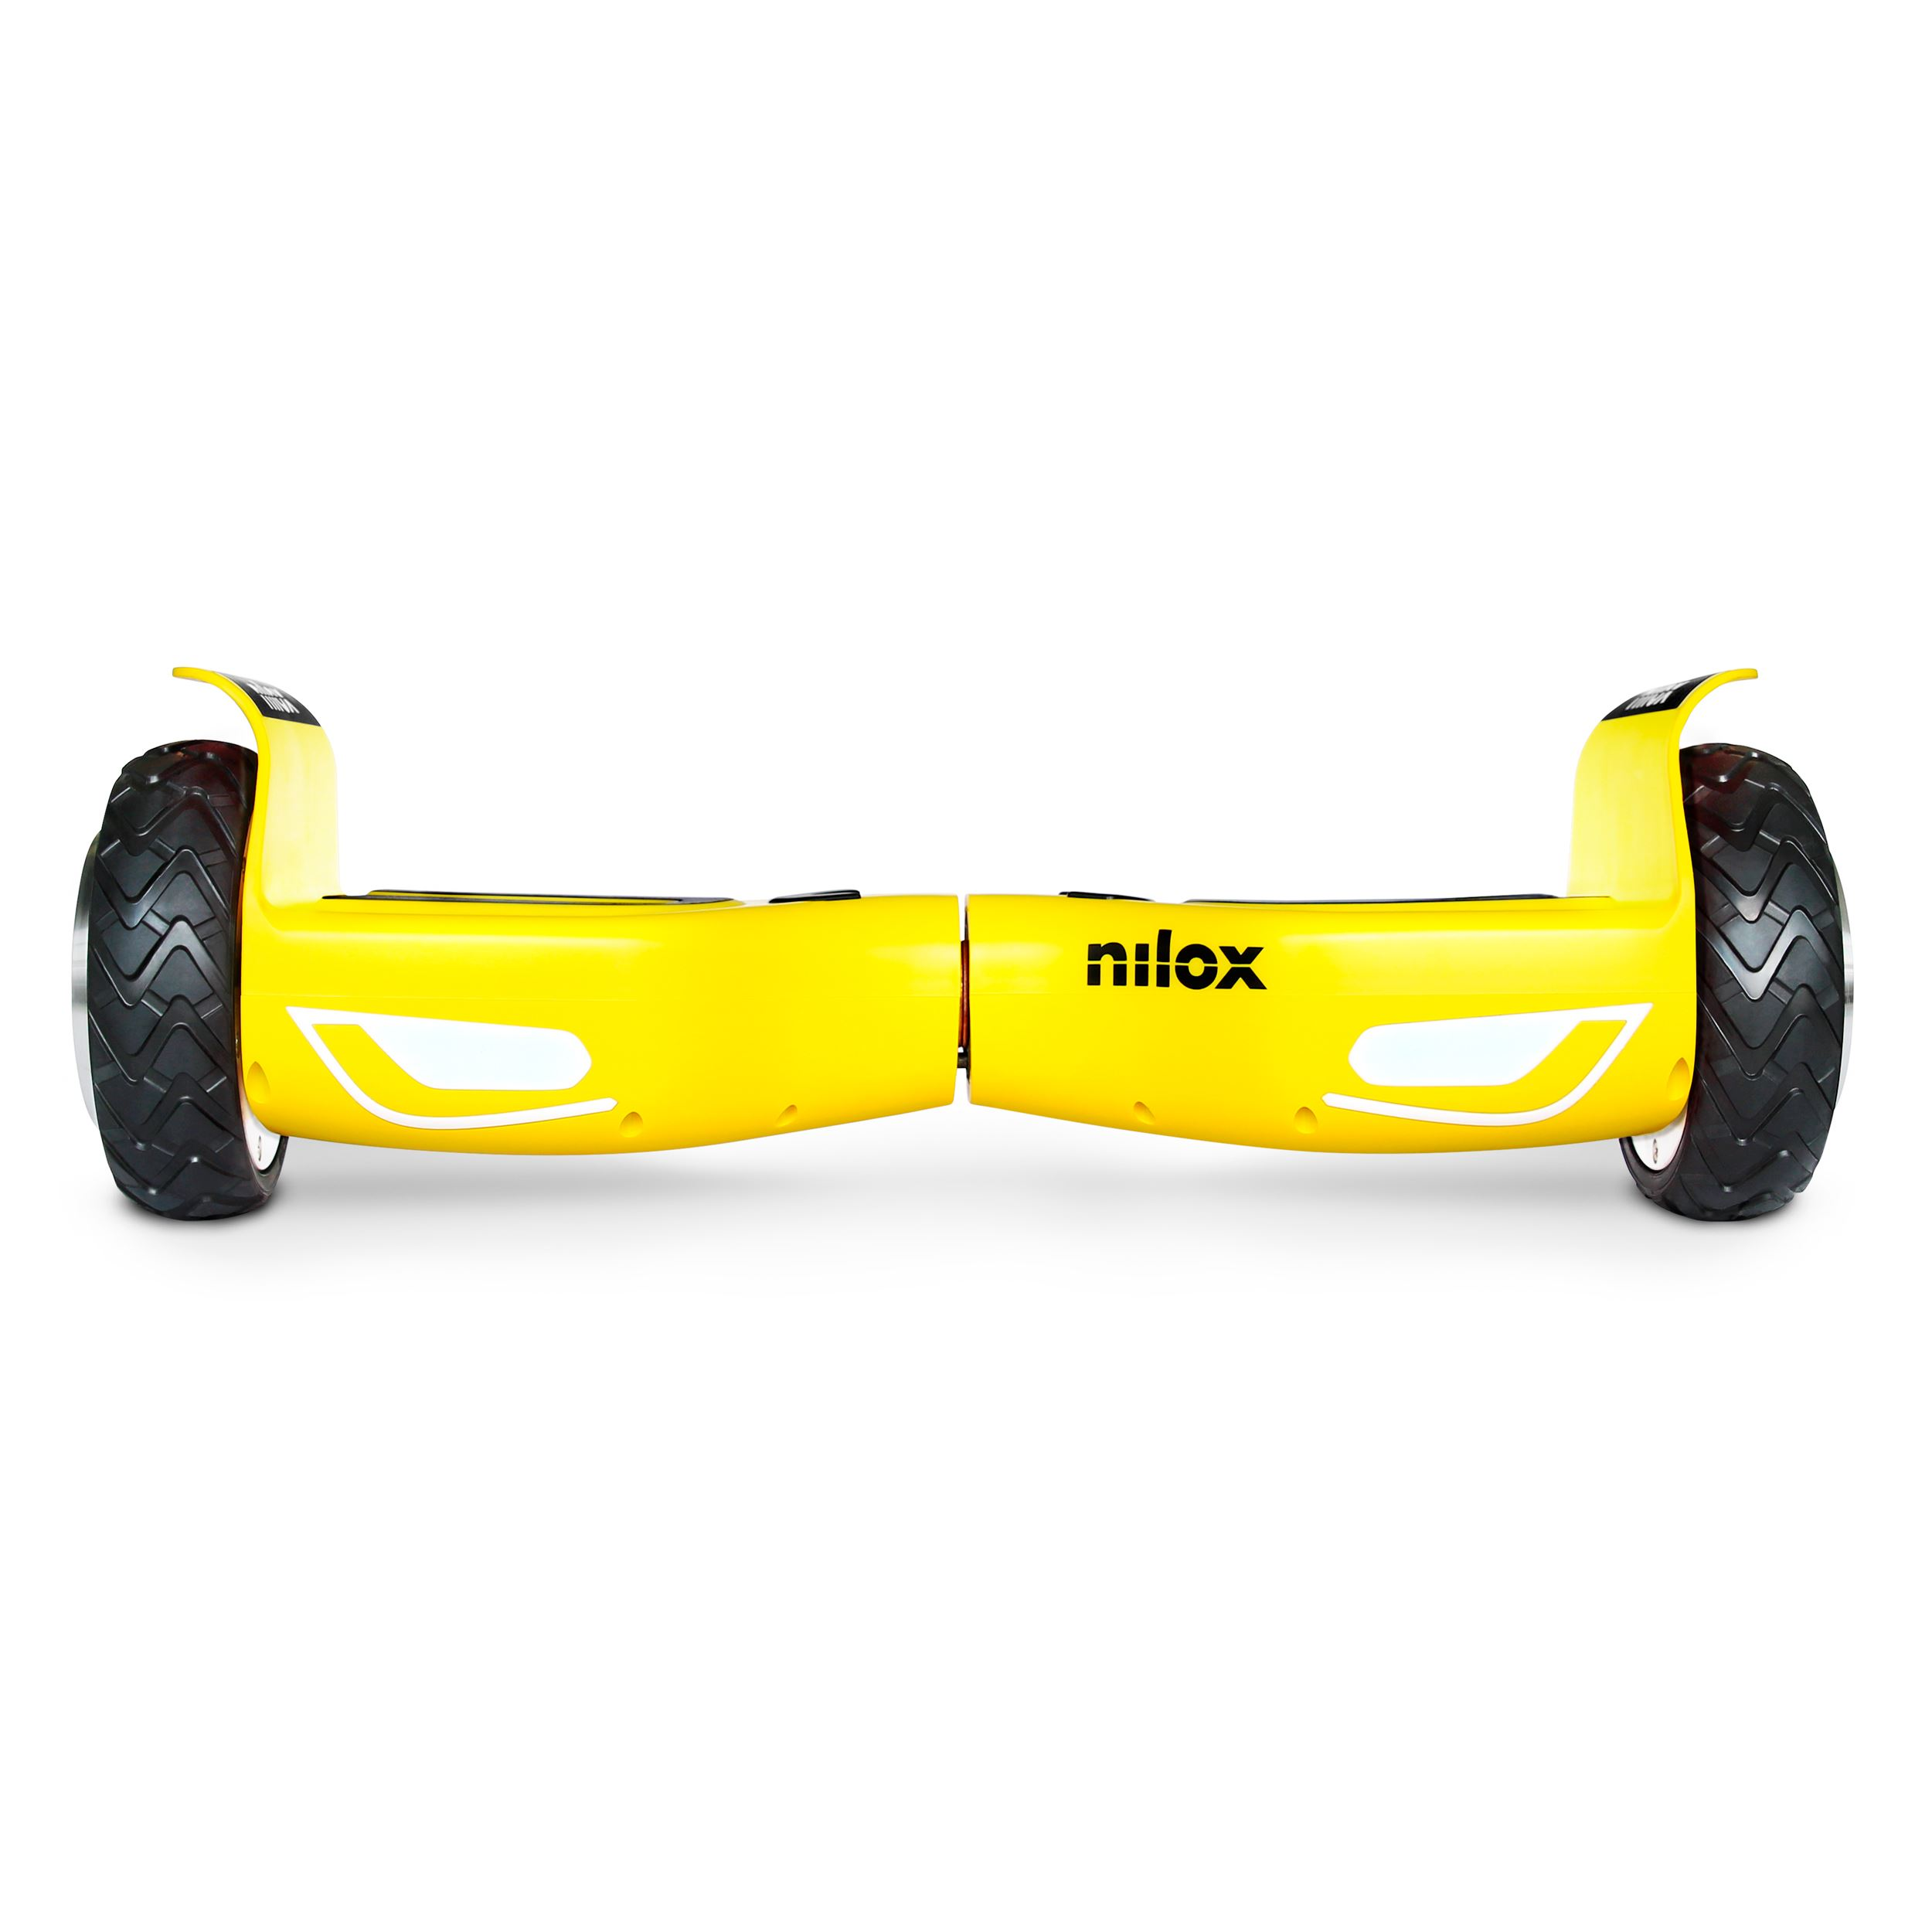 doc-2-hoverboard-yellow-30nxbk65nwn03-505152-hd.jpg